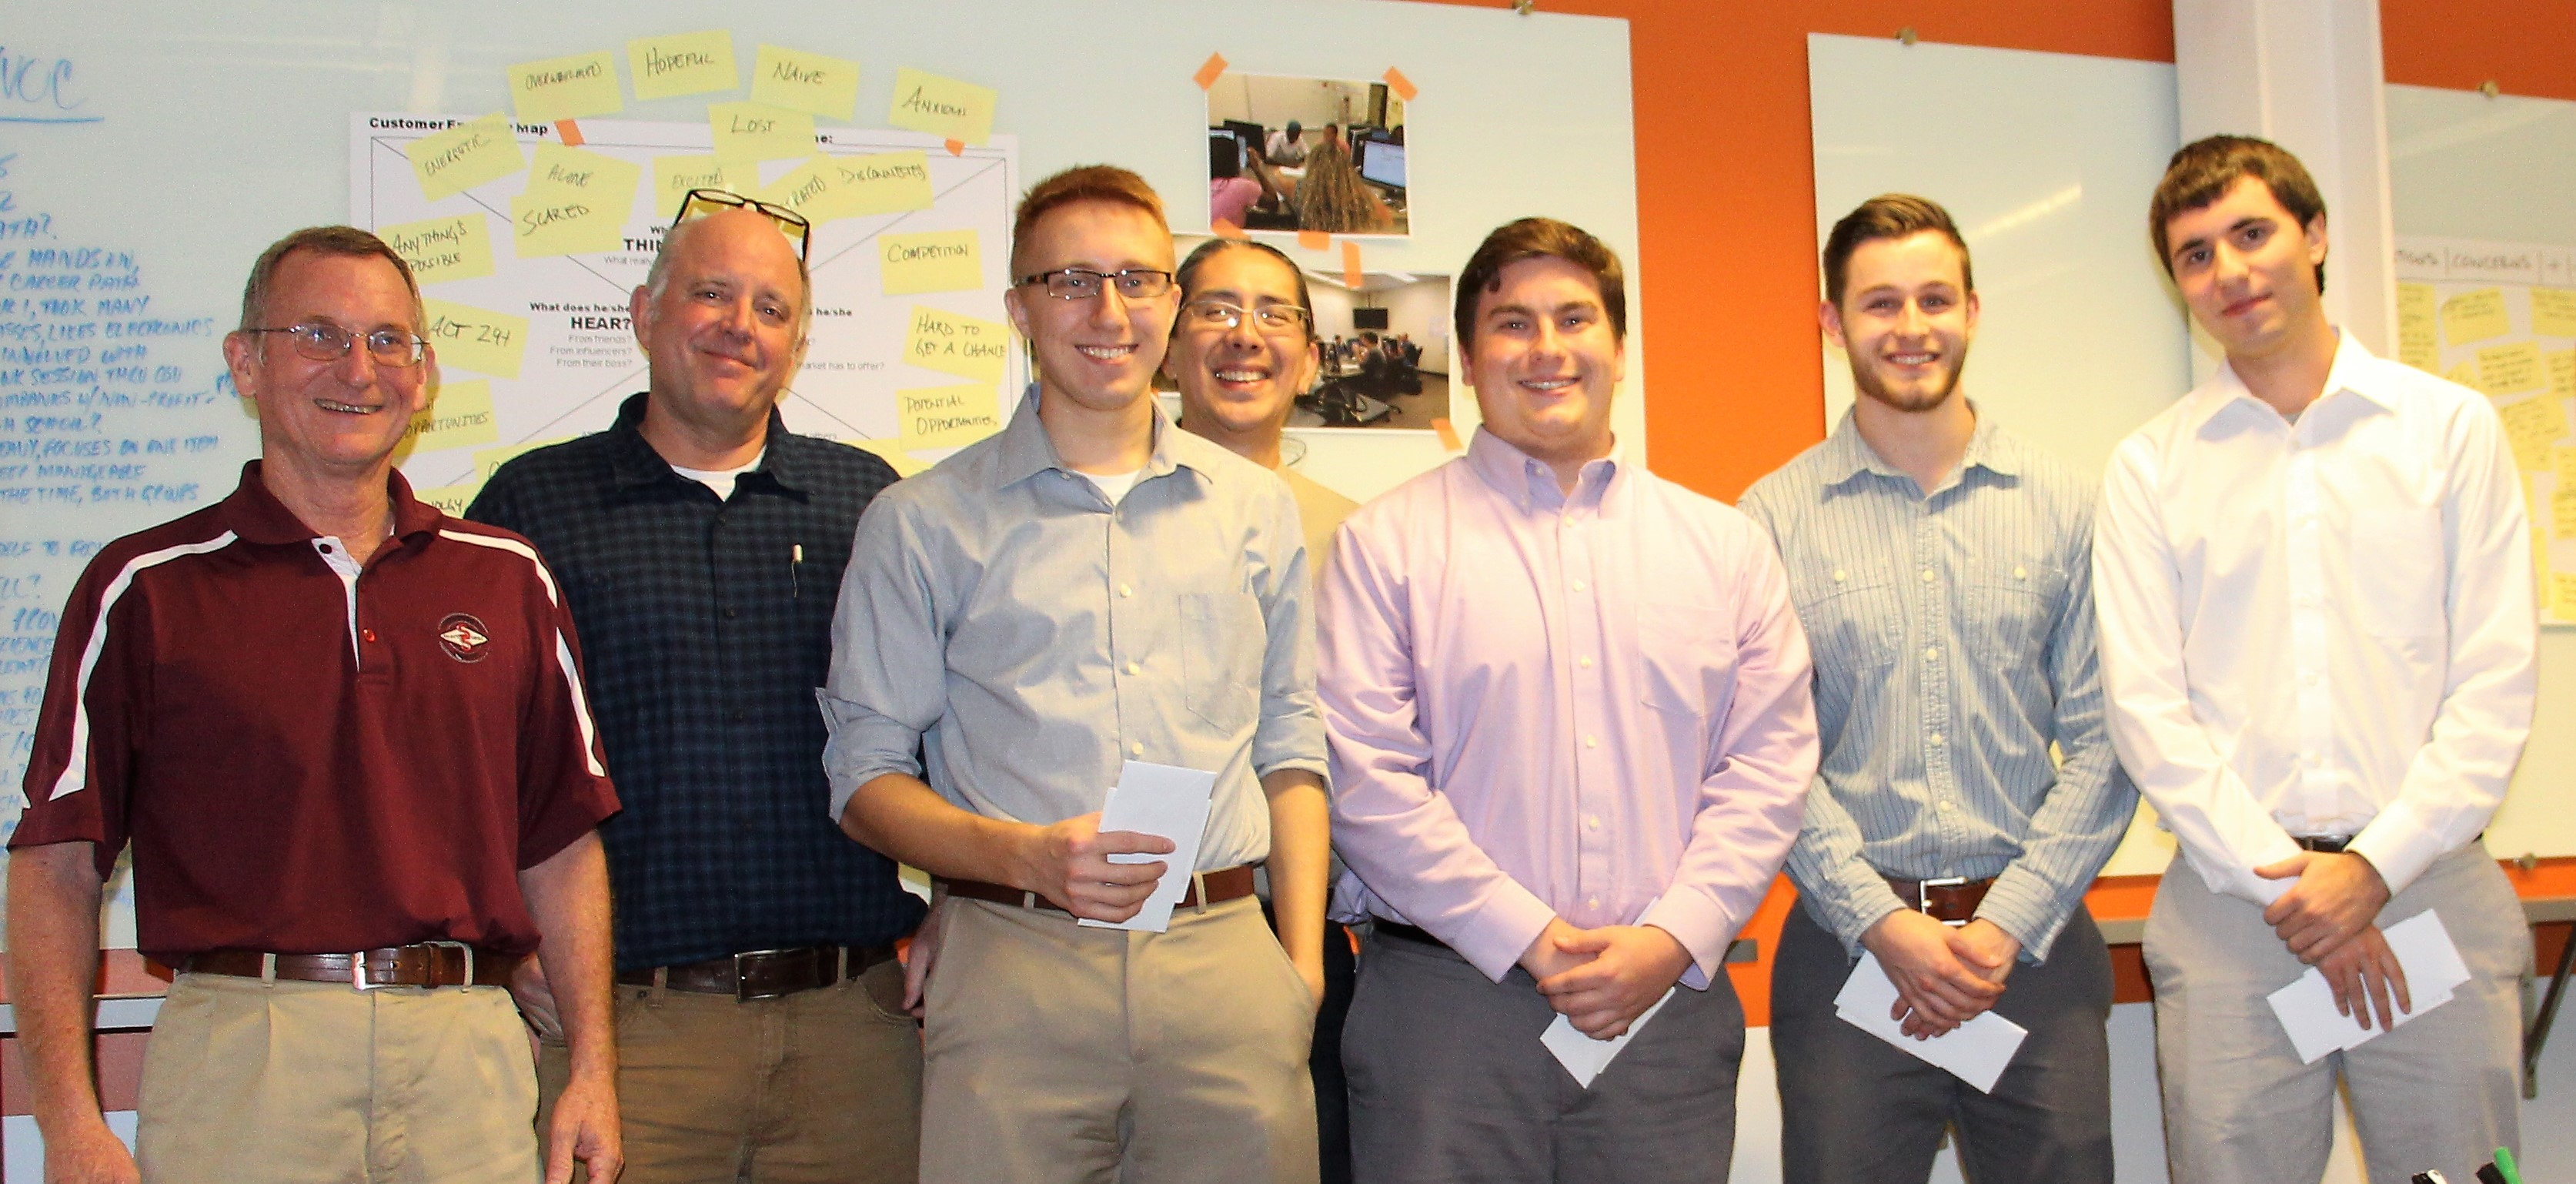 The winning student design team (Alex Machtay, Matt Rowland, Robert Jankovsky, and Adam DeNise) joined by judges Mel DeJarnette with Select Sires and Dr. Bill Benson and Michael Luh from Worthington Industries